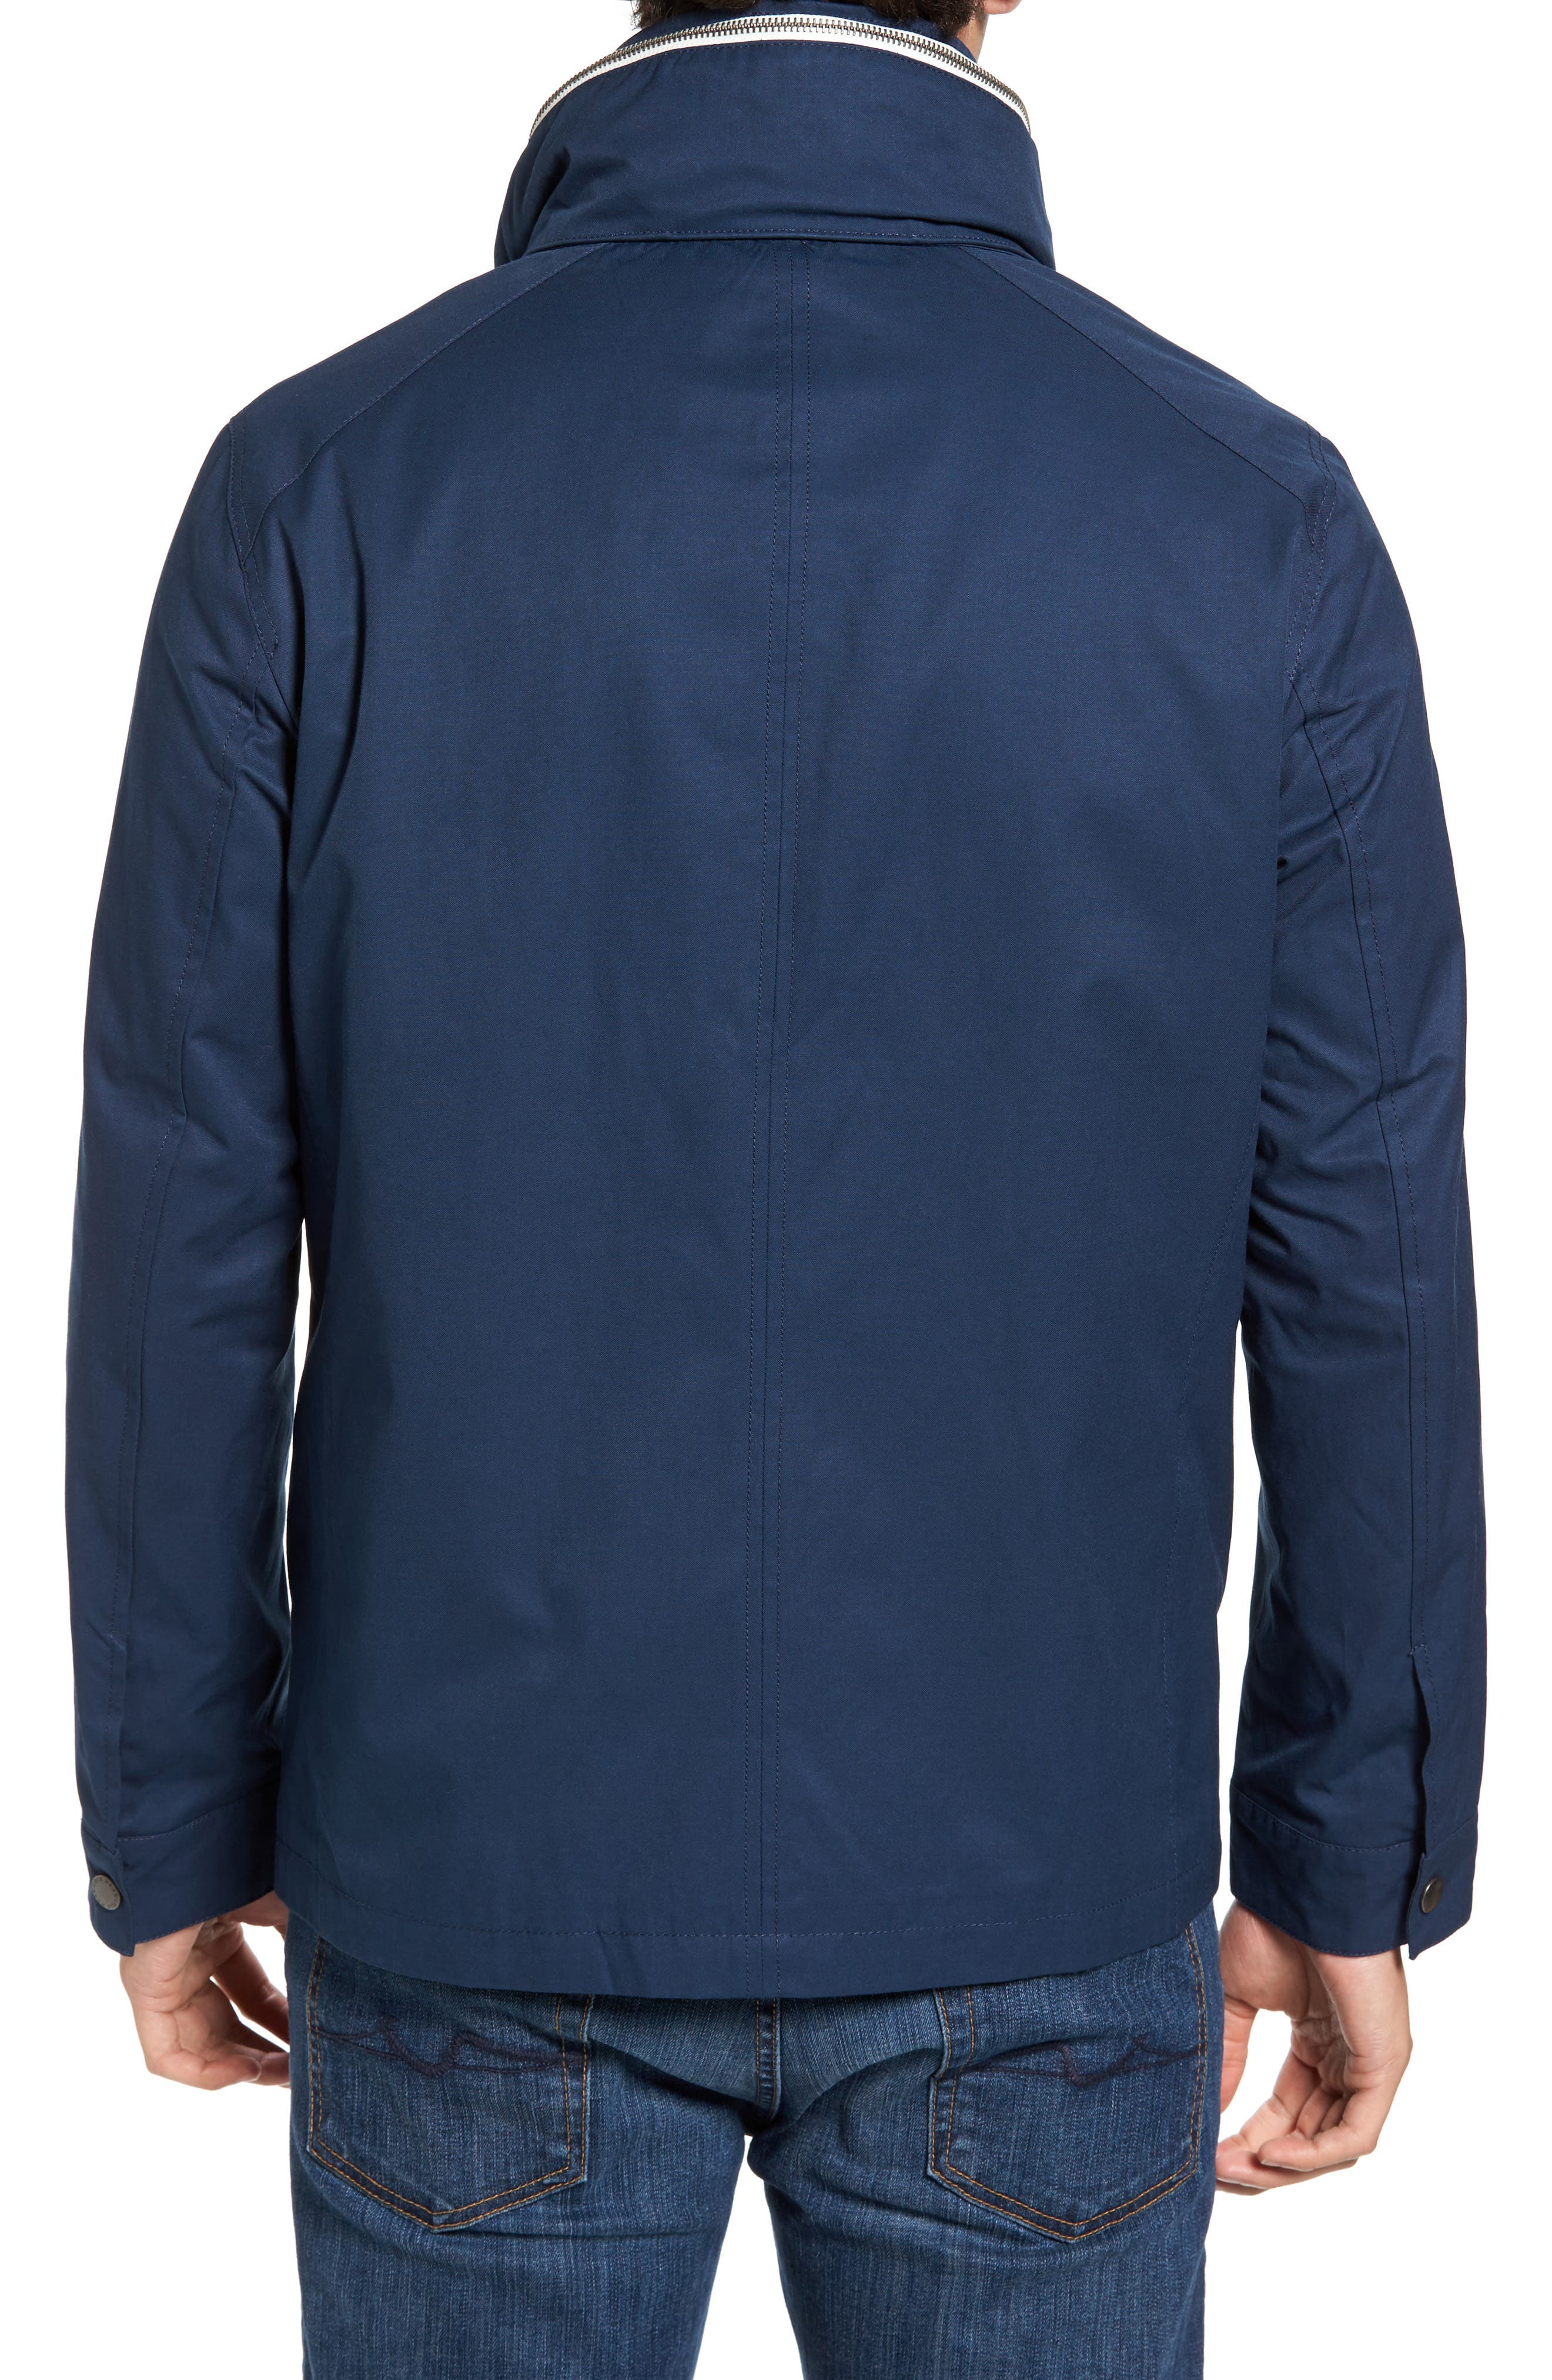 Military Oxford Jacket,                             Alternate thumbnail 2, color,                             419